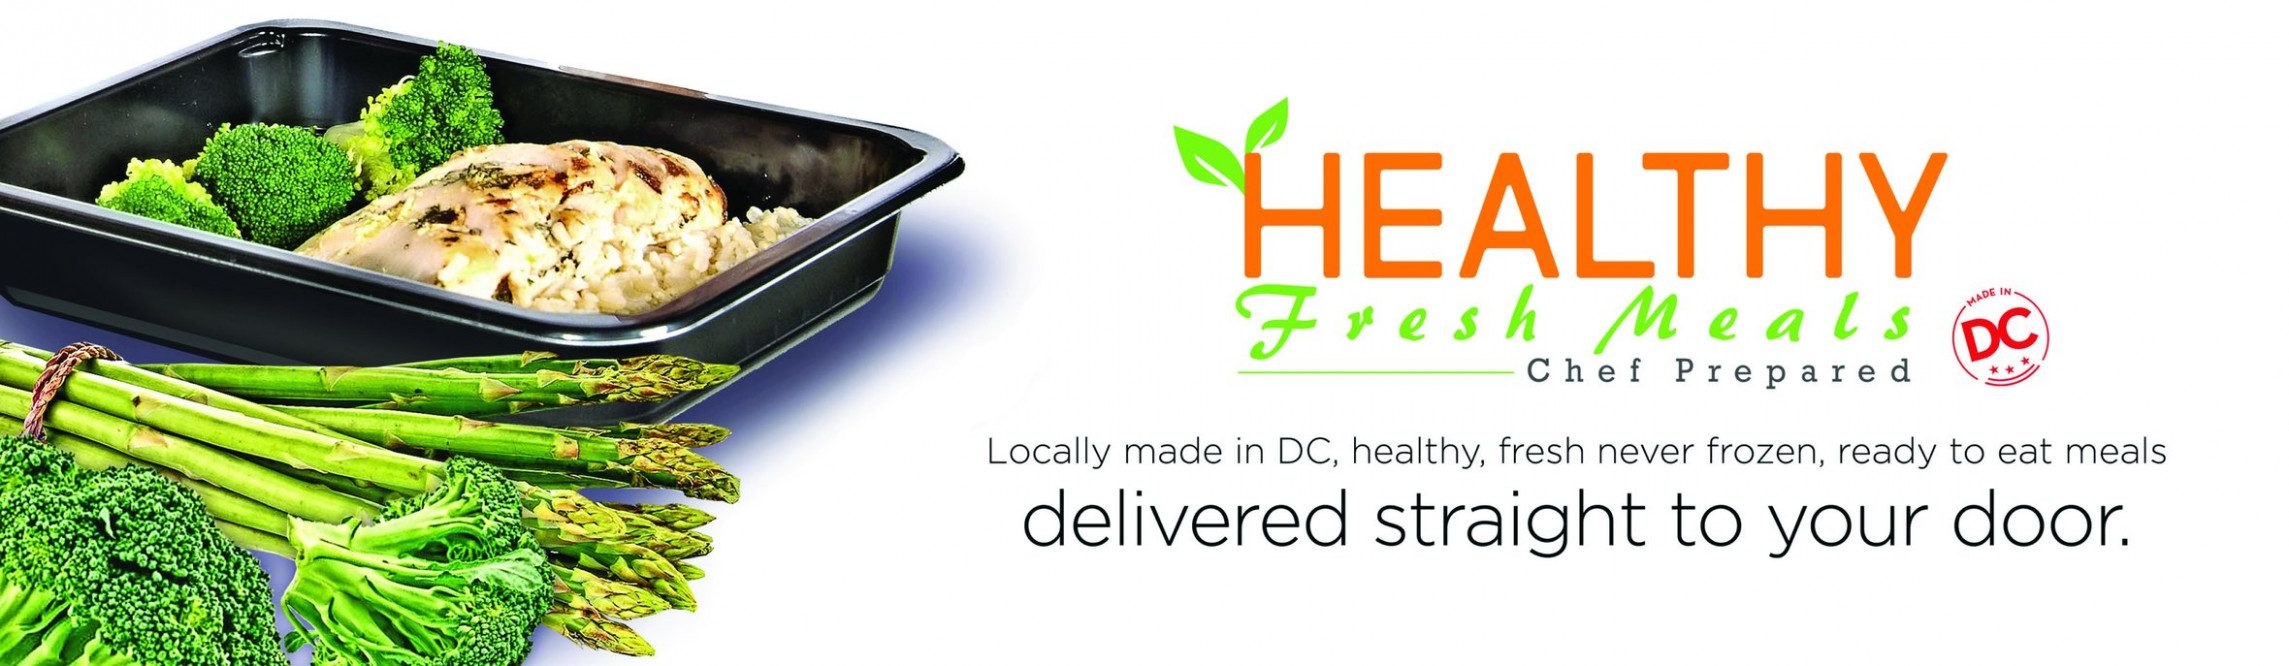 Meal Prep Delivery Service for Washington DC, Maryland MD, Virginia VA - food recipes delivered